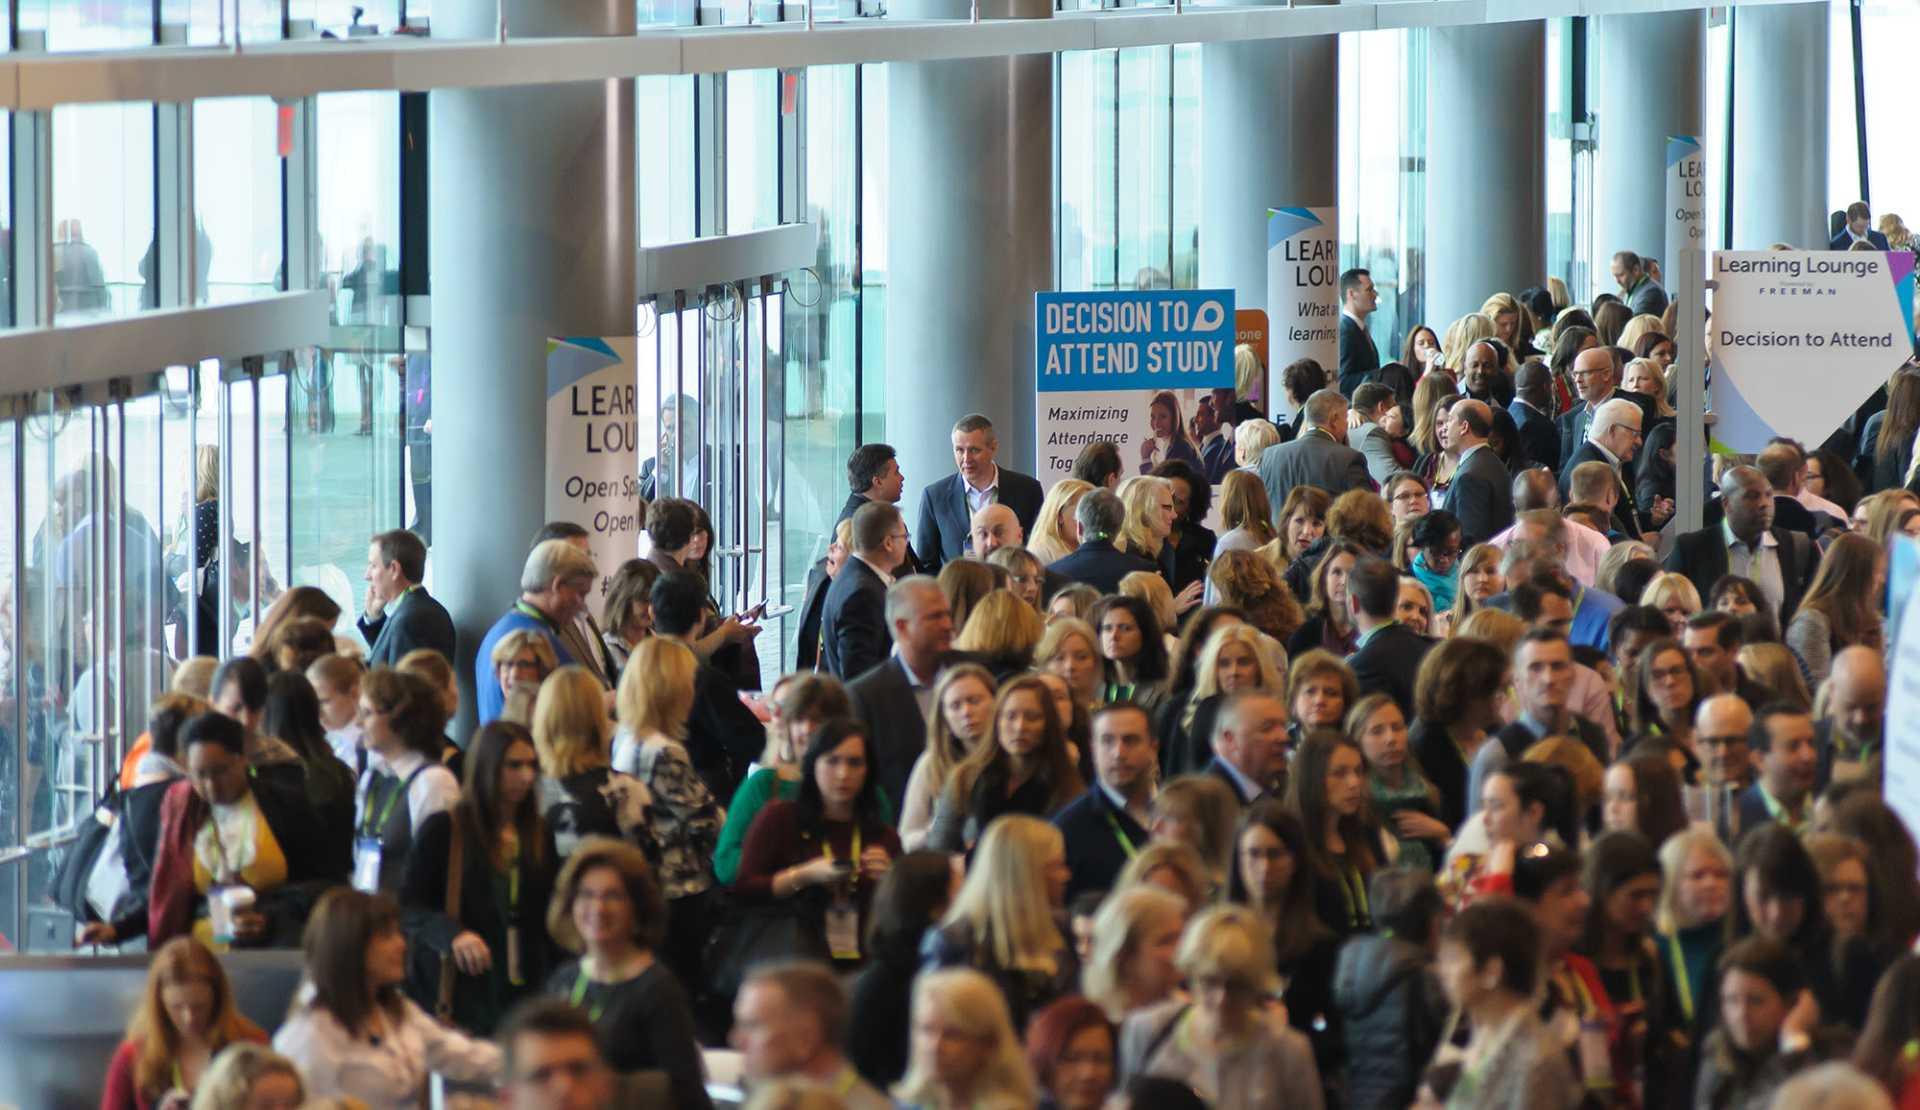 Vancouver Convention Centre: Busy Ballroom Foyer